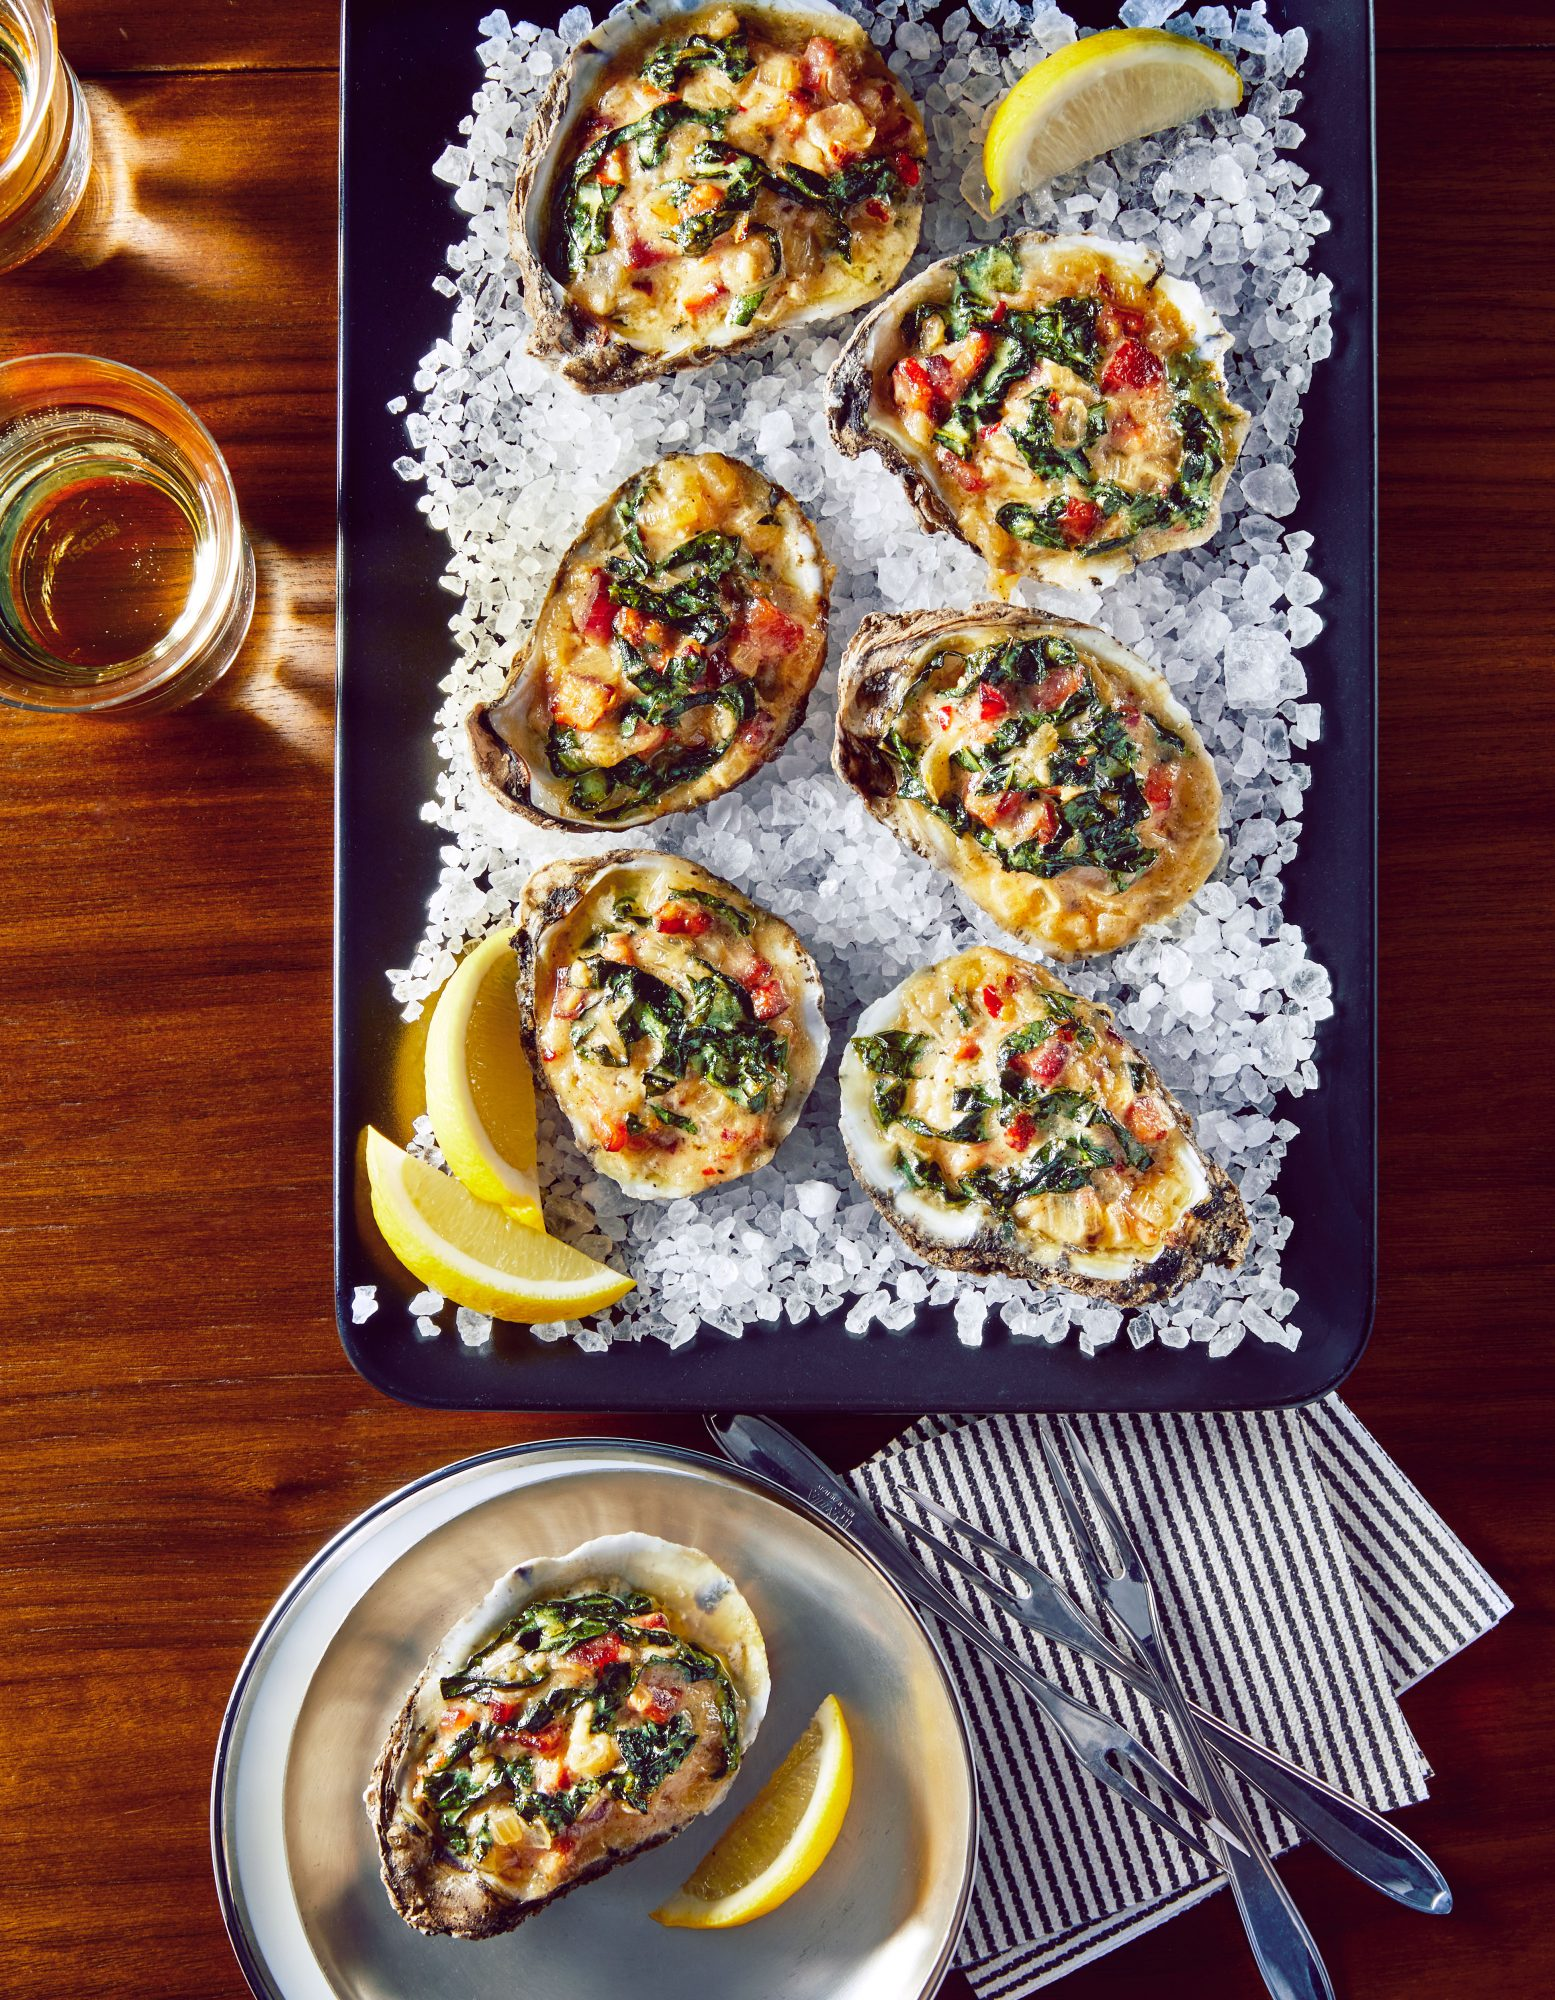 Baked Oysters with Bacon, Greens, and Parmesan